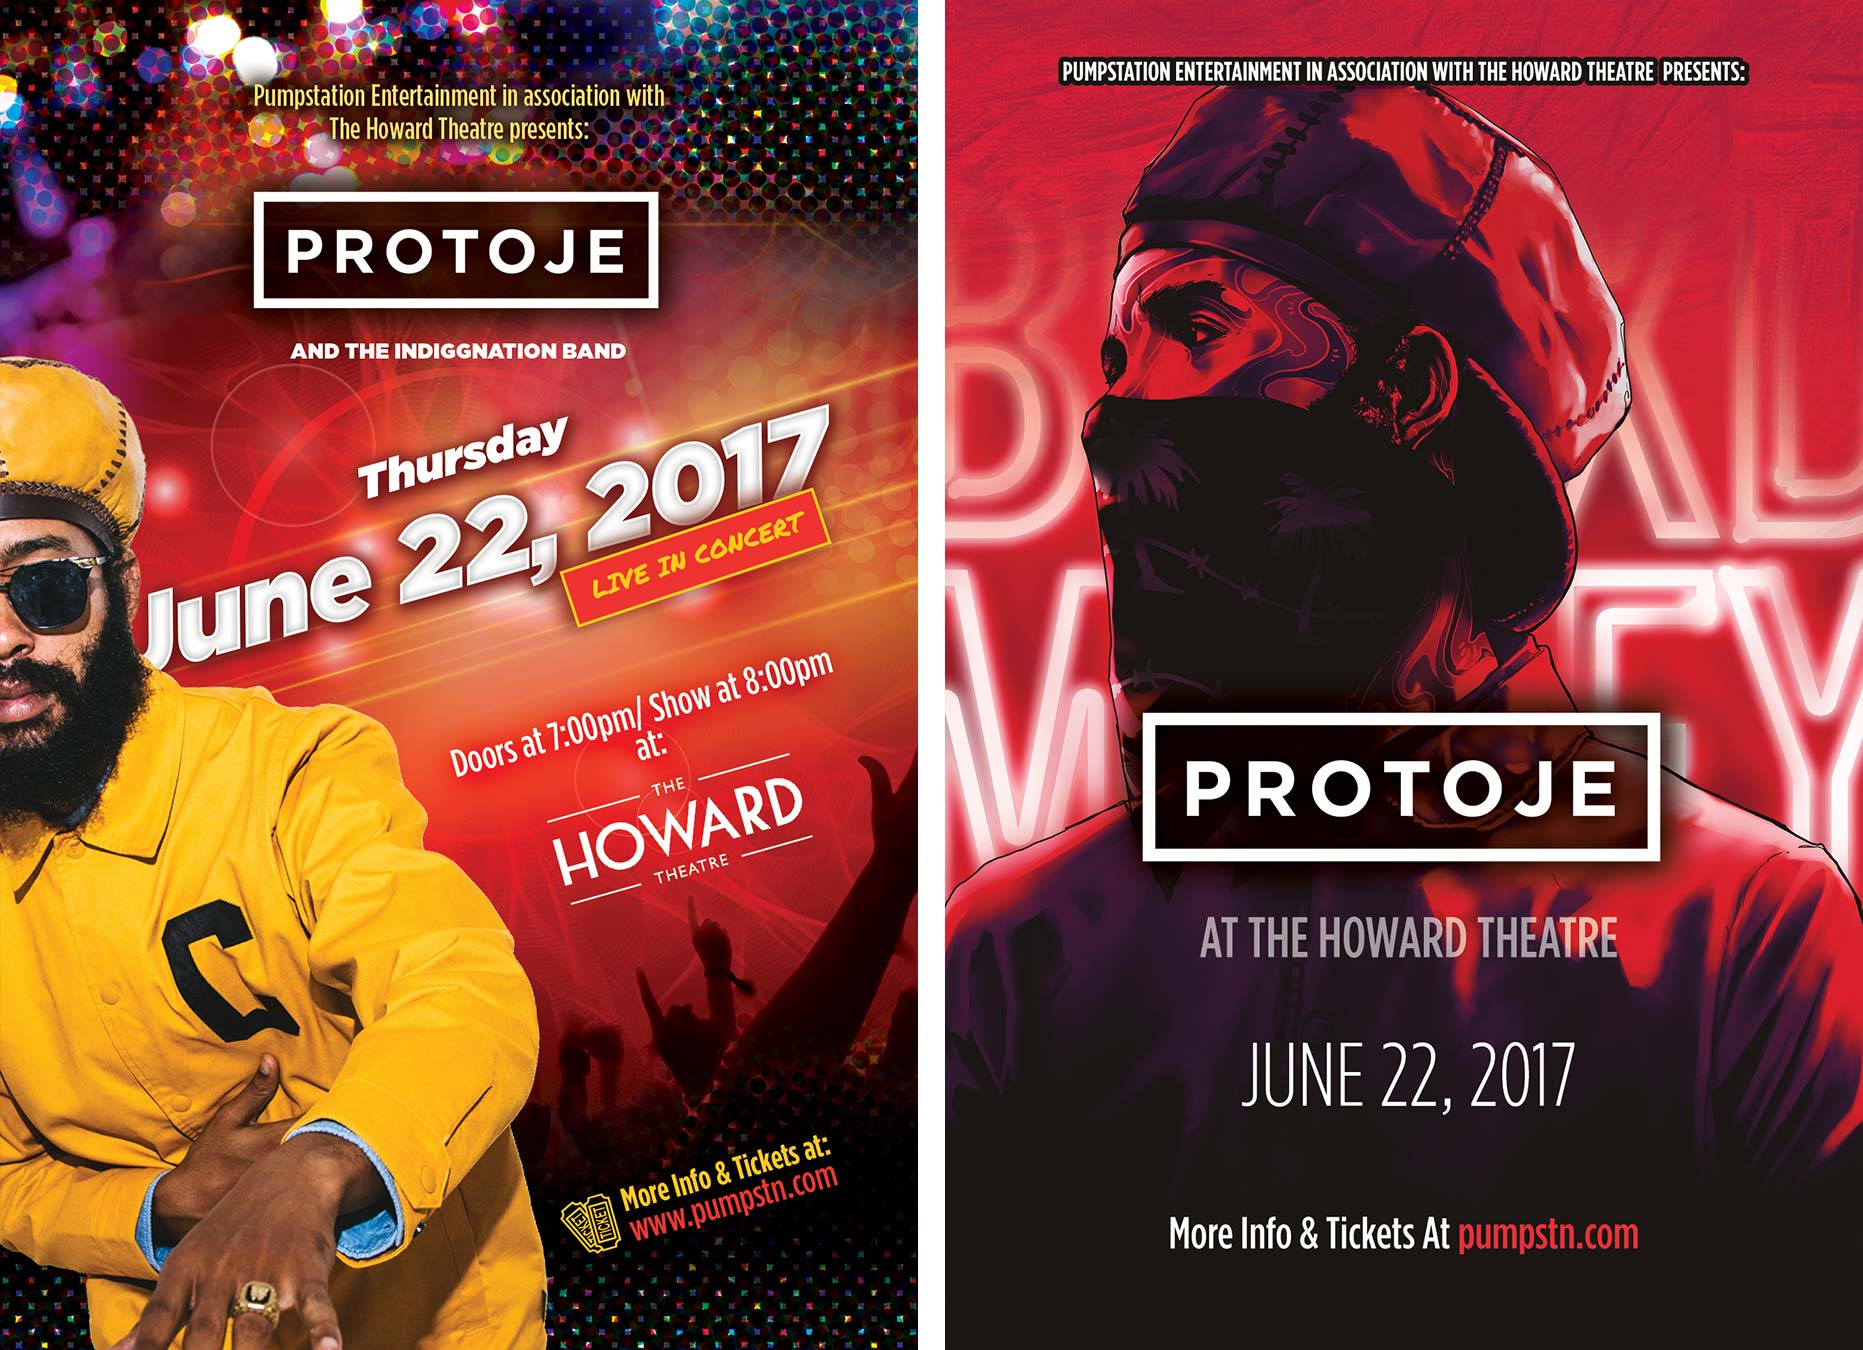 Protoje flyer design